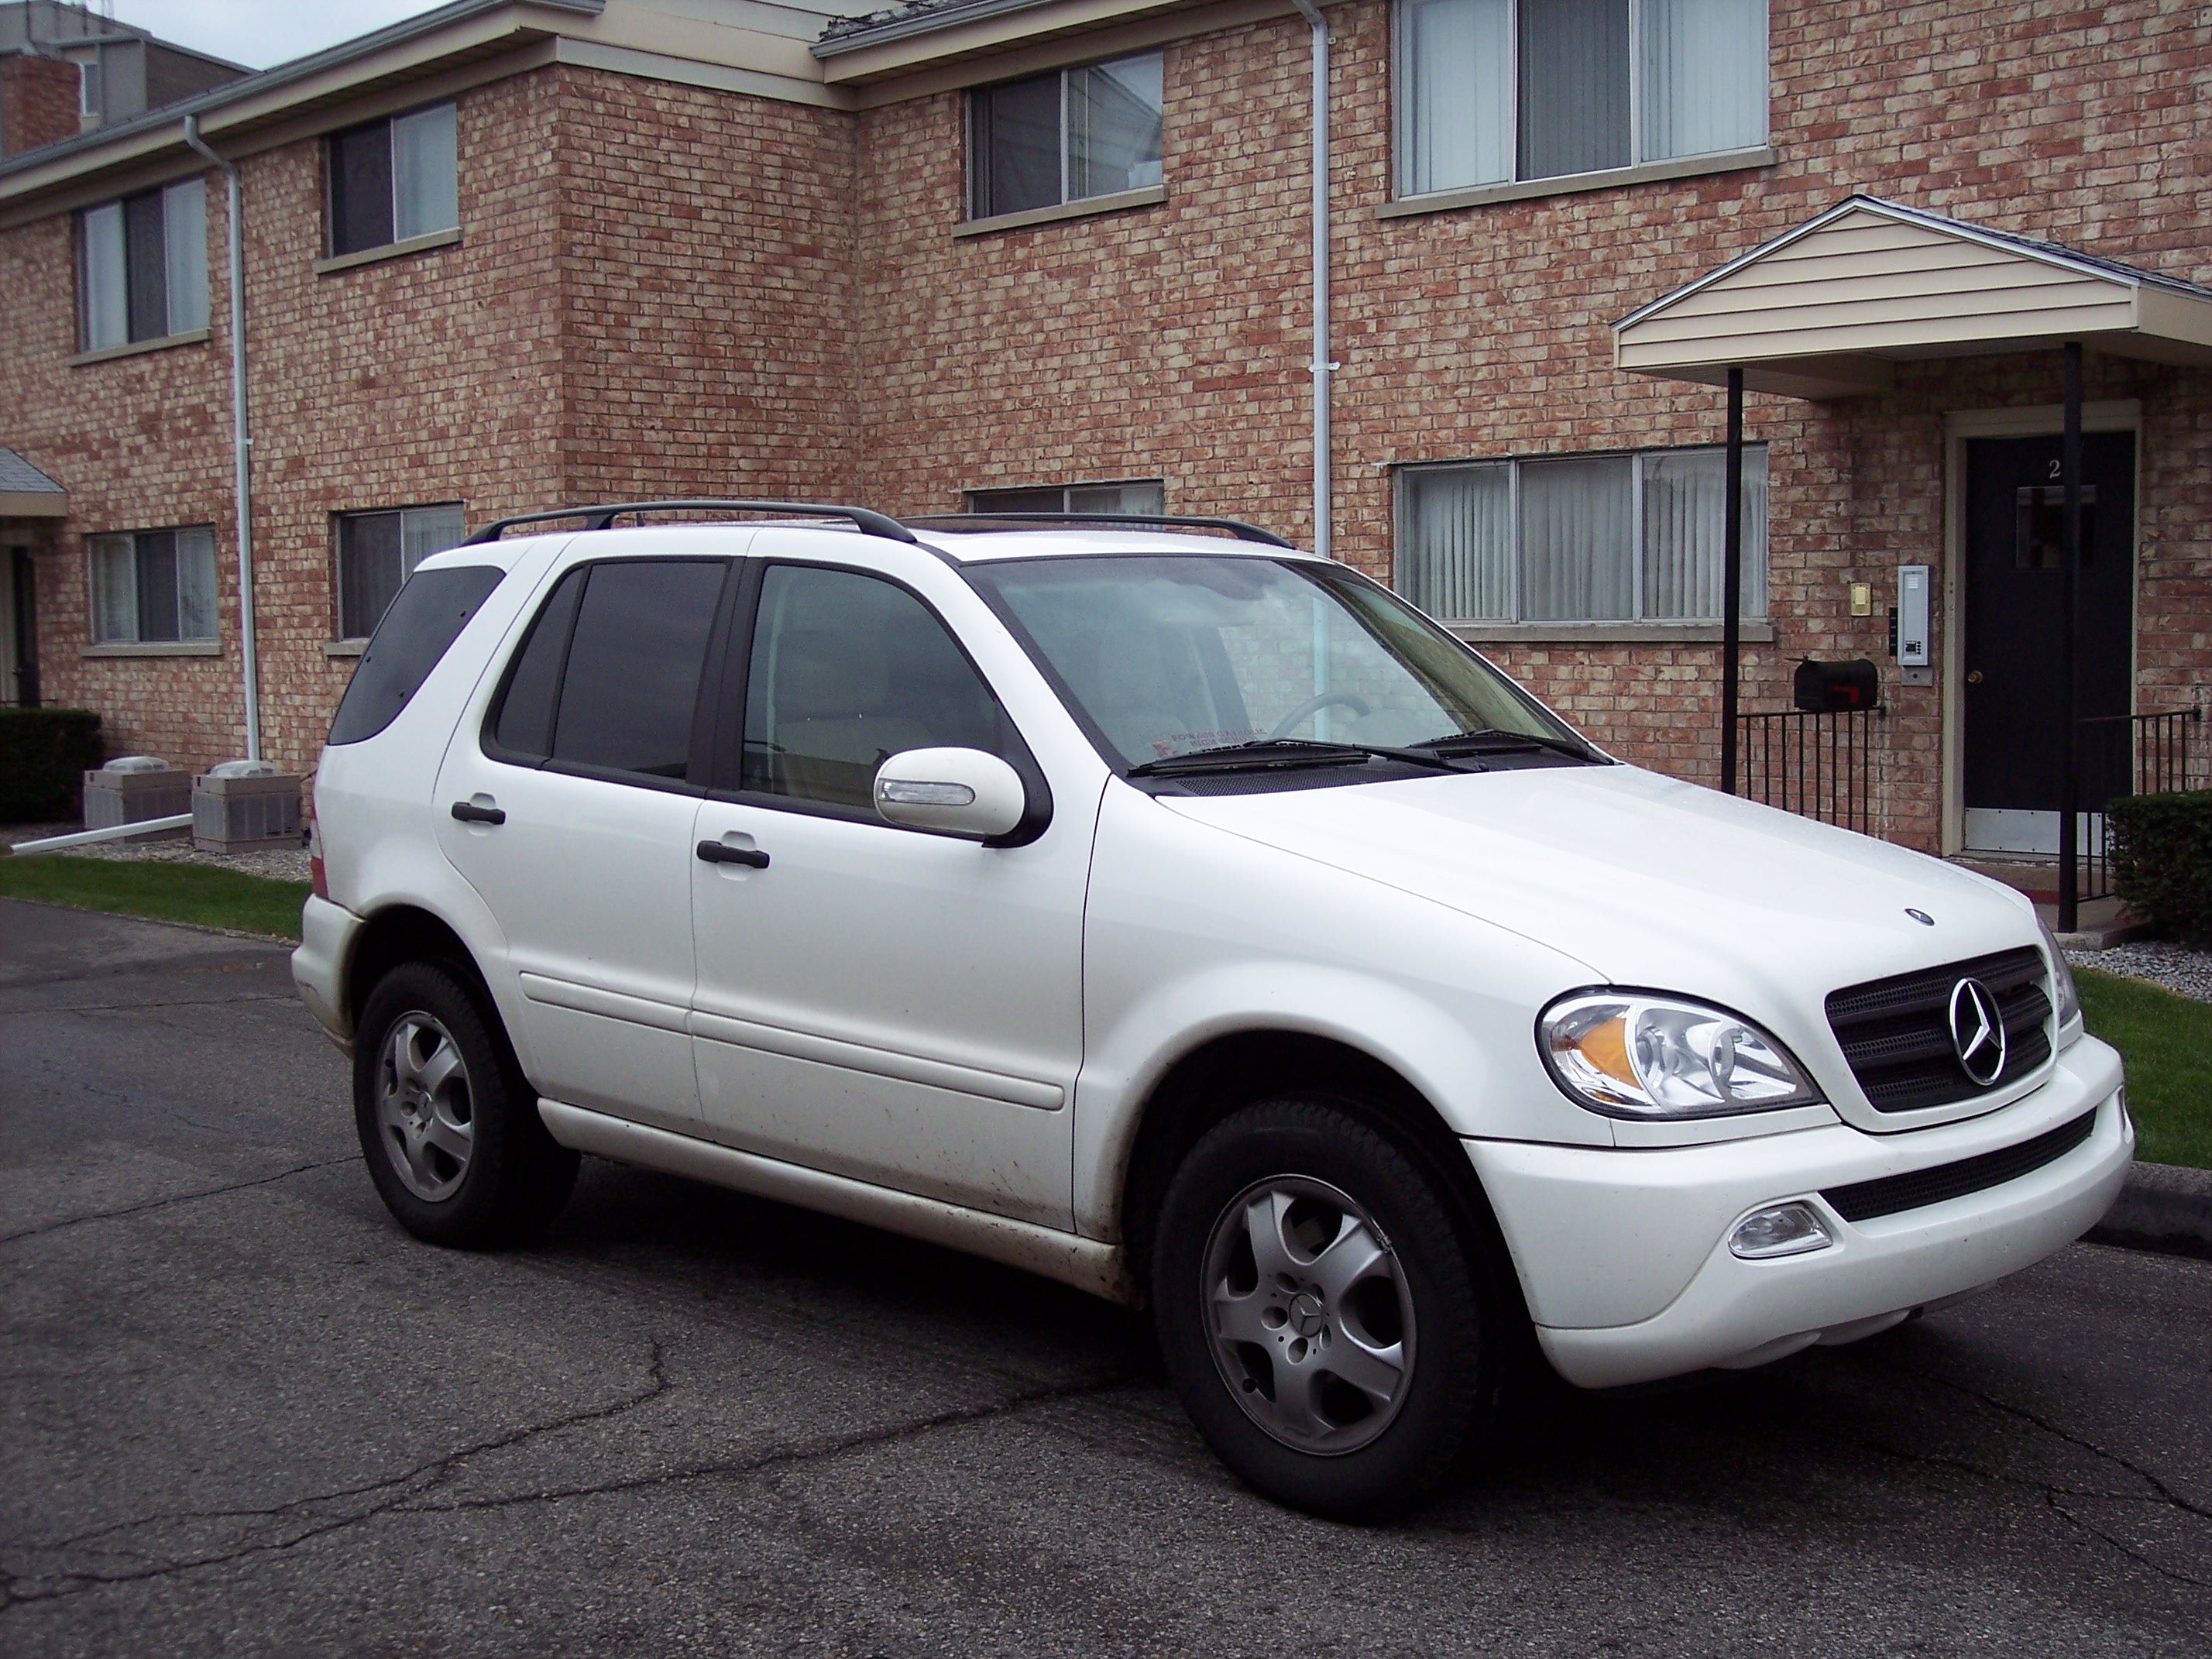 file mercedes benz ml350 wikimedia commons